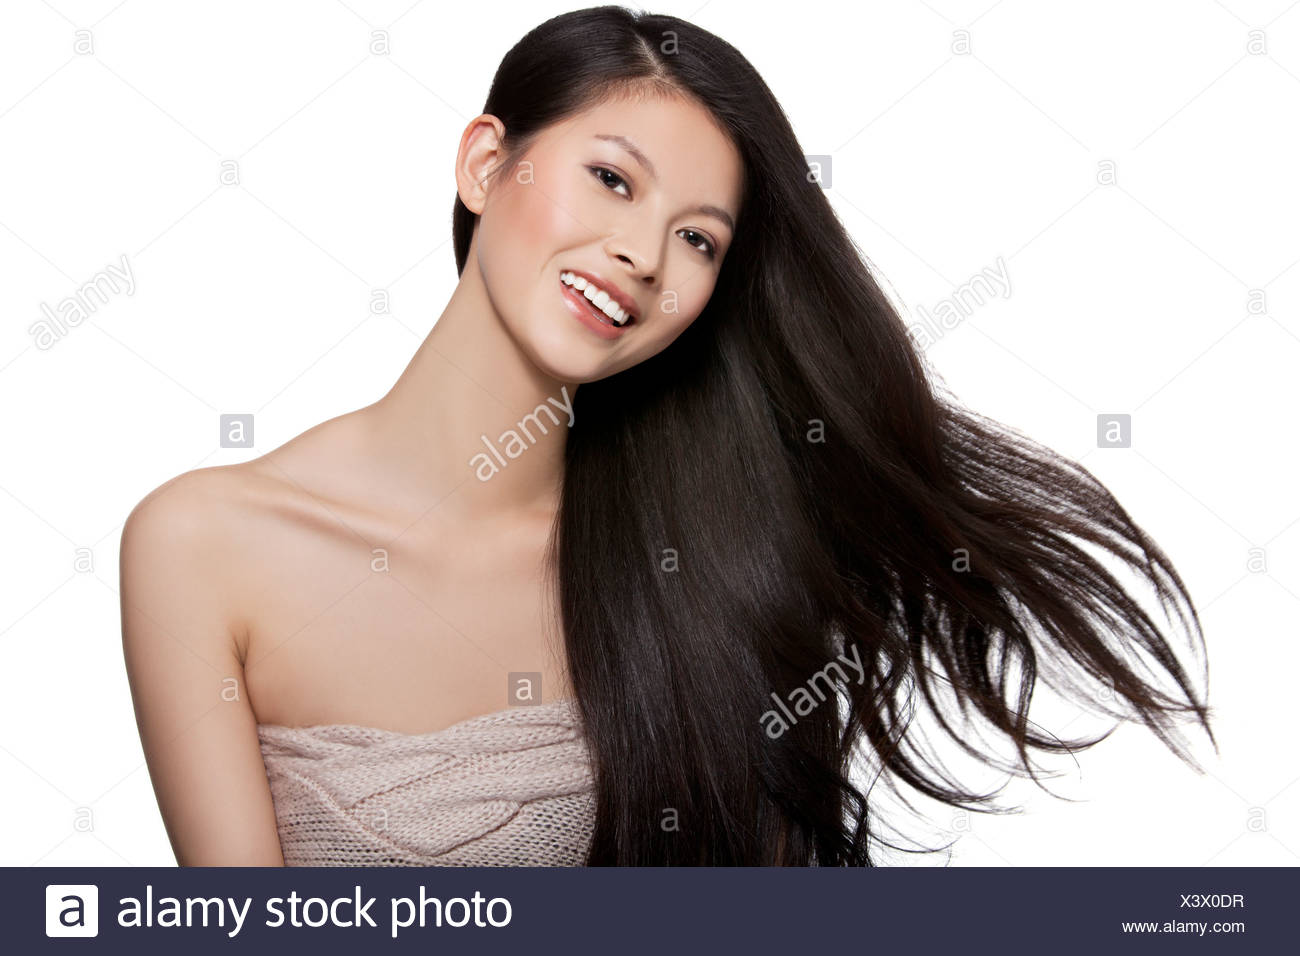 Young Woman With Long Hair Blowing in the Air - Stock Image